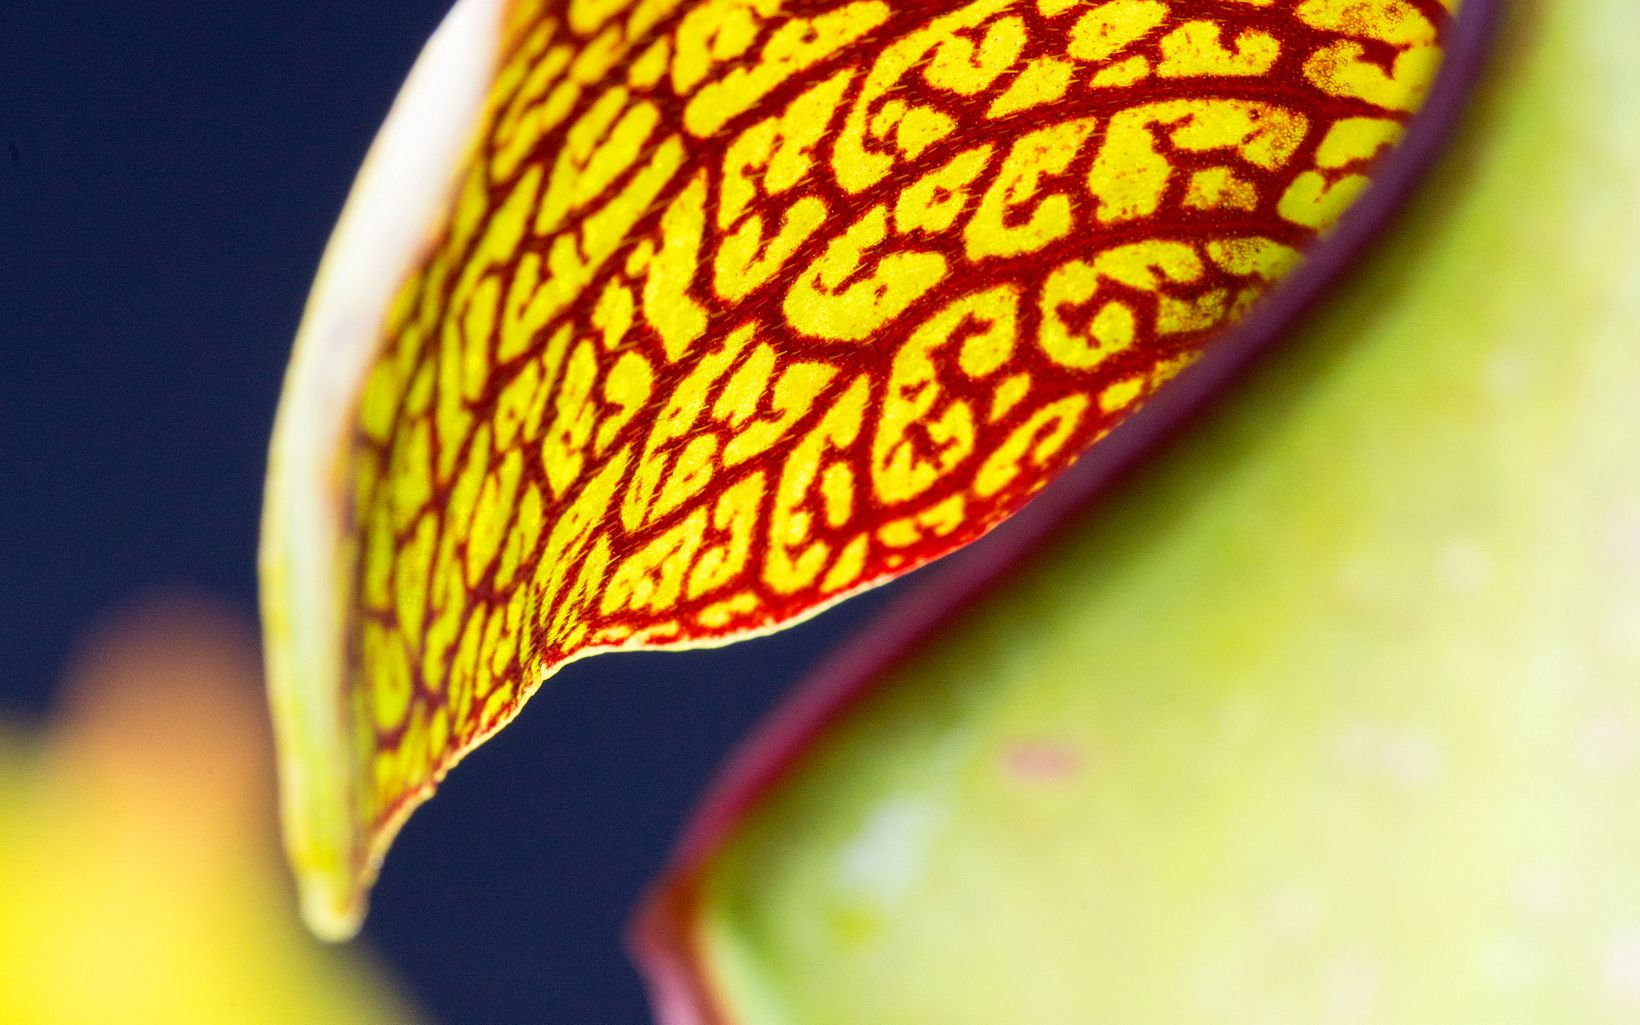 Extreme closeup of a pitcher plant pitcher with red lines on a green background.